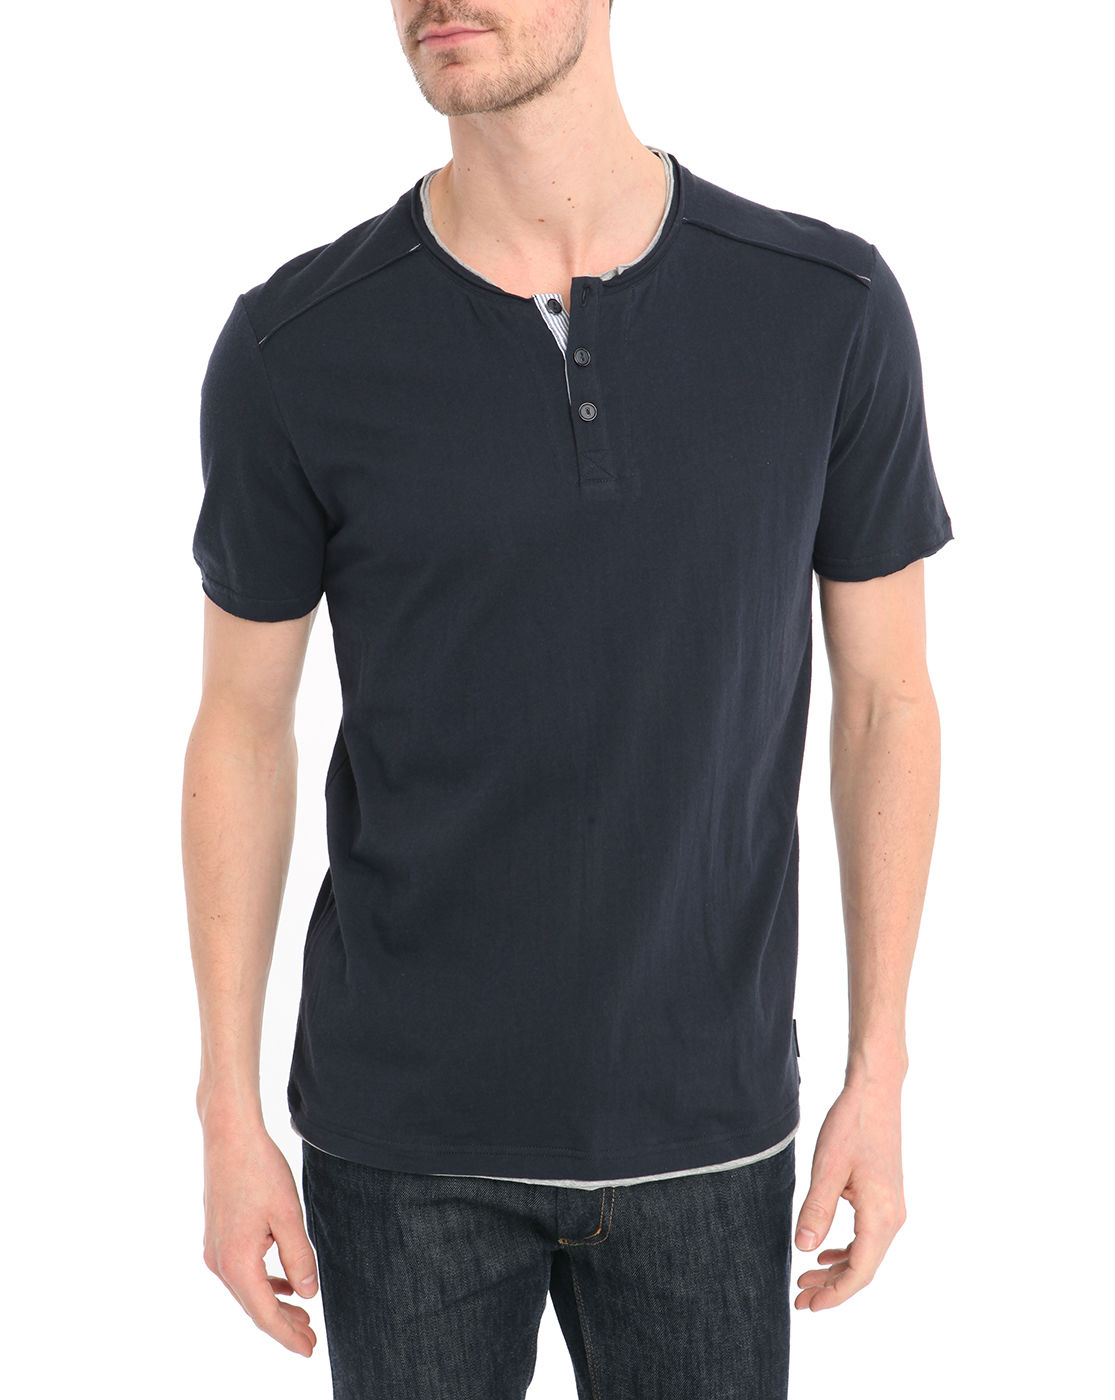 Button up t shirts mens is shirt for Button up mens shirt